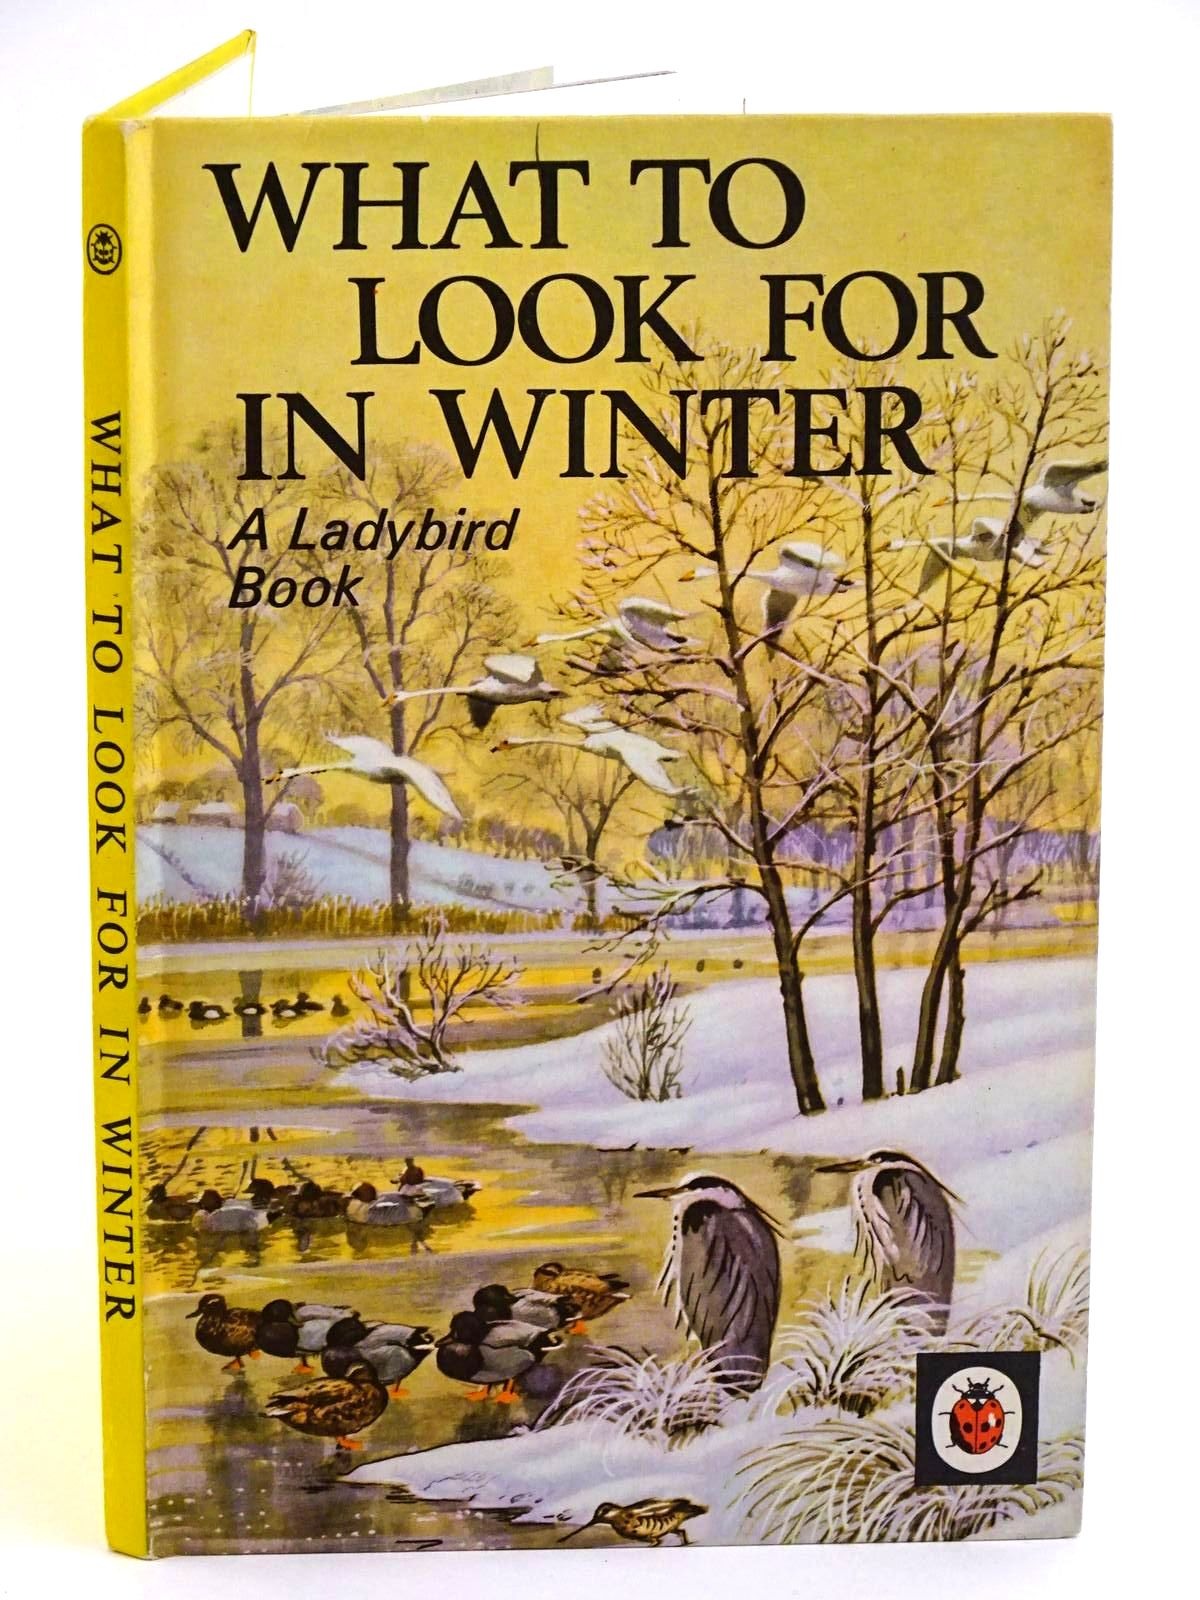 Photo of WHAT TO LOOK FOR IN WINTER written by Watson, E.L. Grant illustrated by Tunnicliffe, C.F. published by Wills & Hepworth Ltd. (STOCK CODE: 1318154)  for sale by Stella & Rose's Books